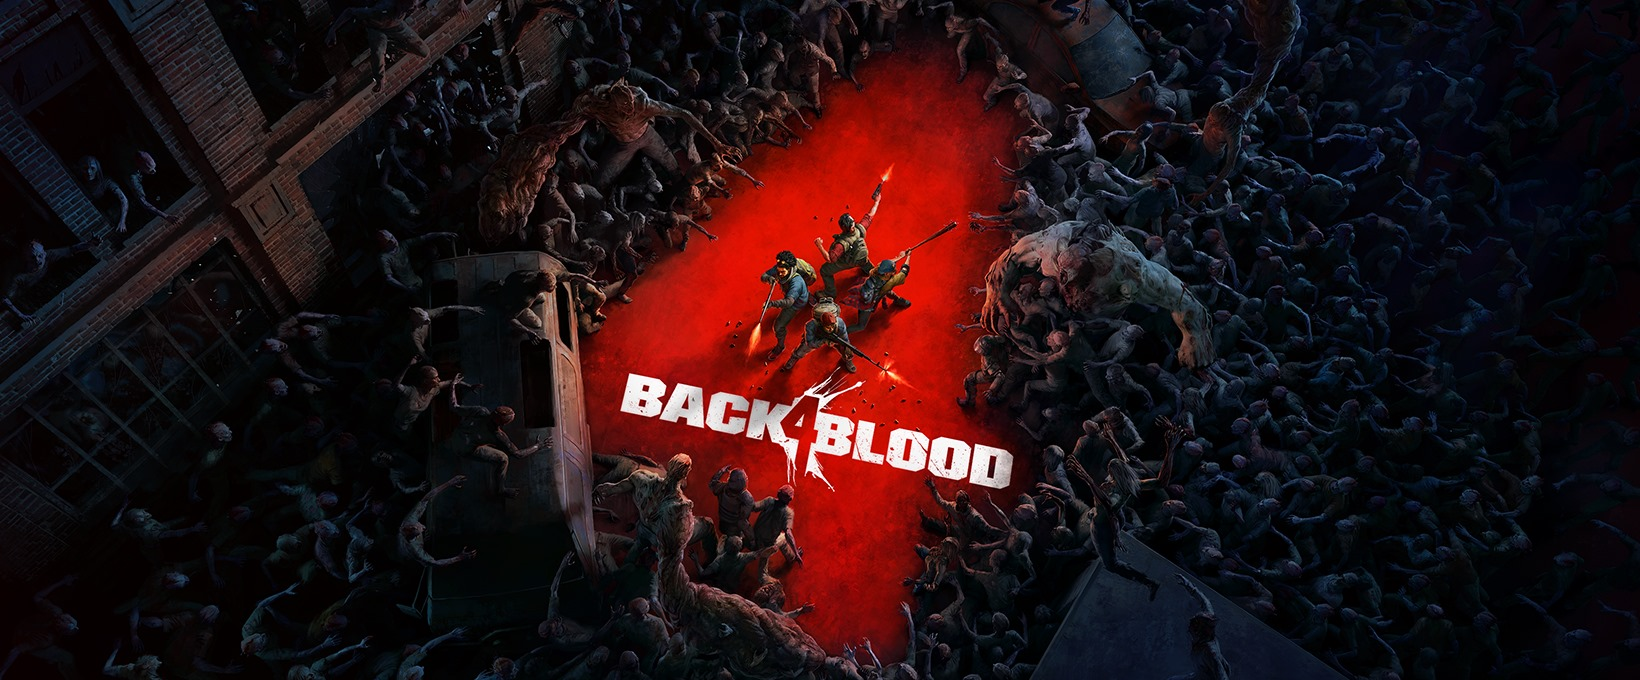 Back 4 Blood Gameplay and Showcase